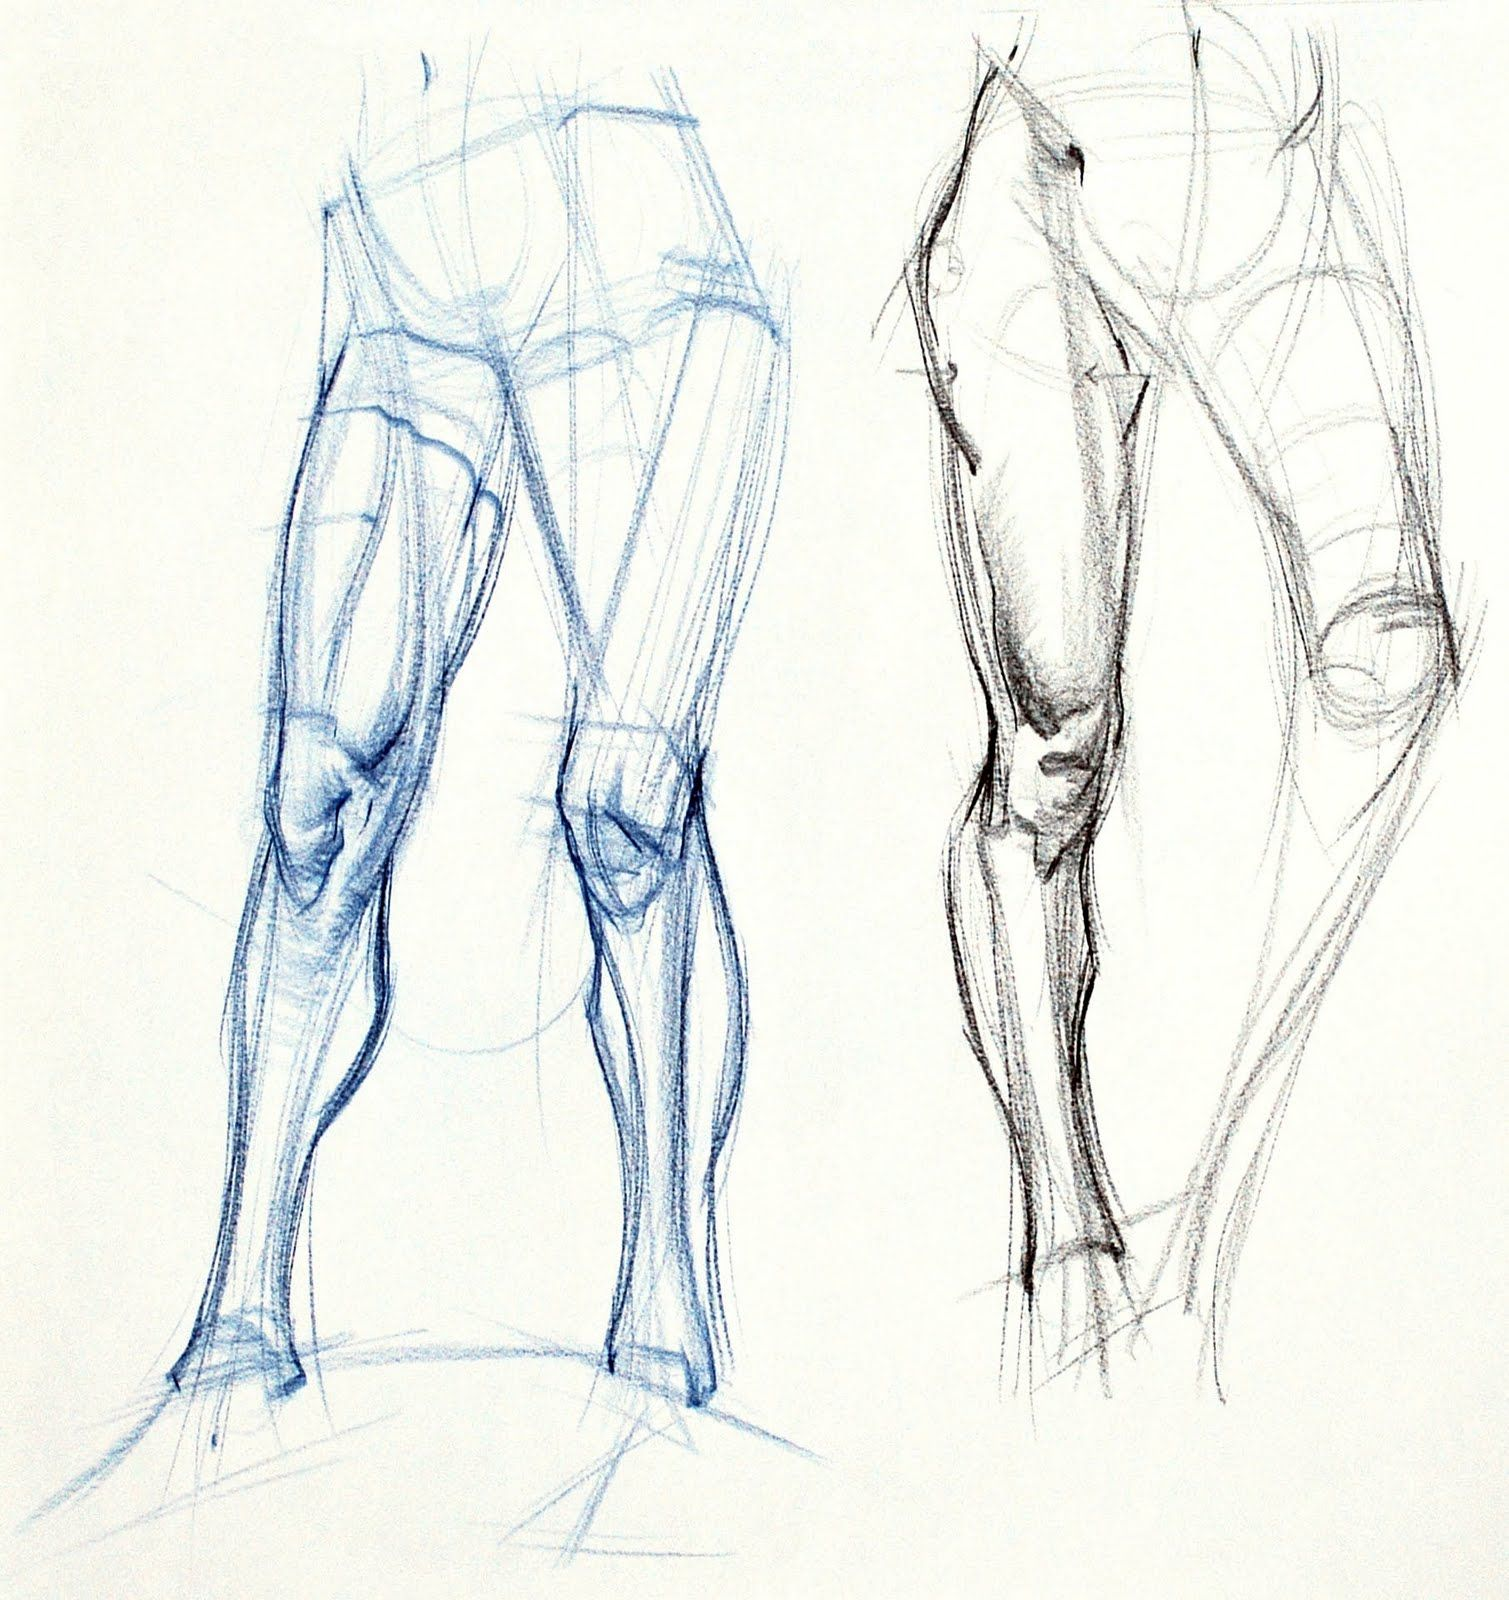 Pin by pat reilly on Legs | Pinterest | Anatomy, Drawings and Sketches